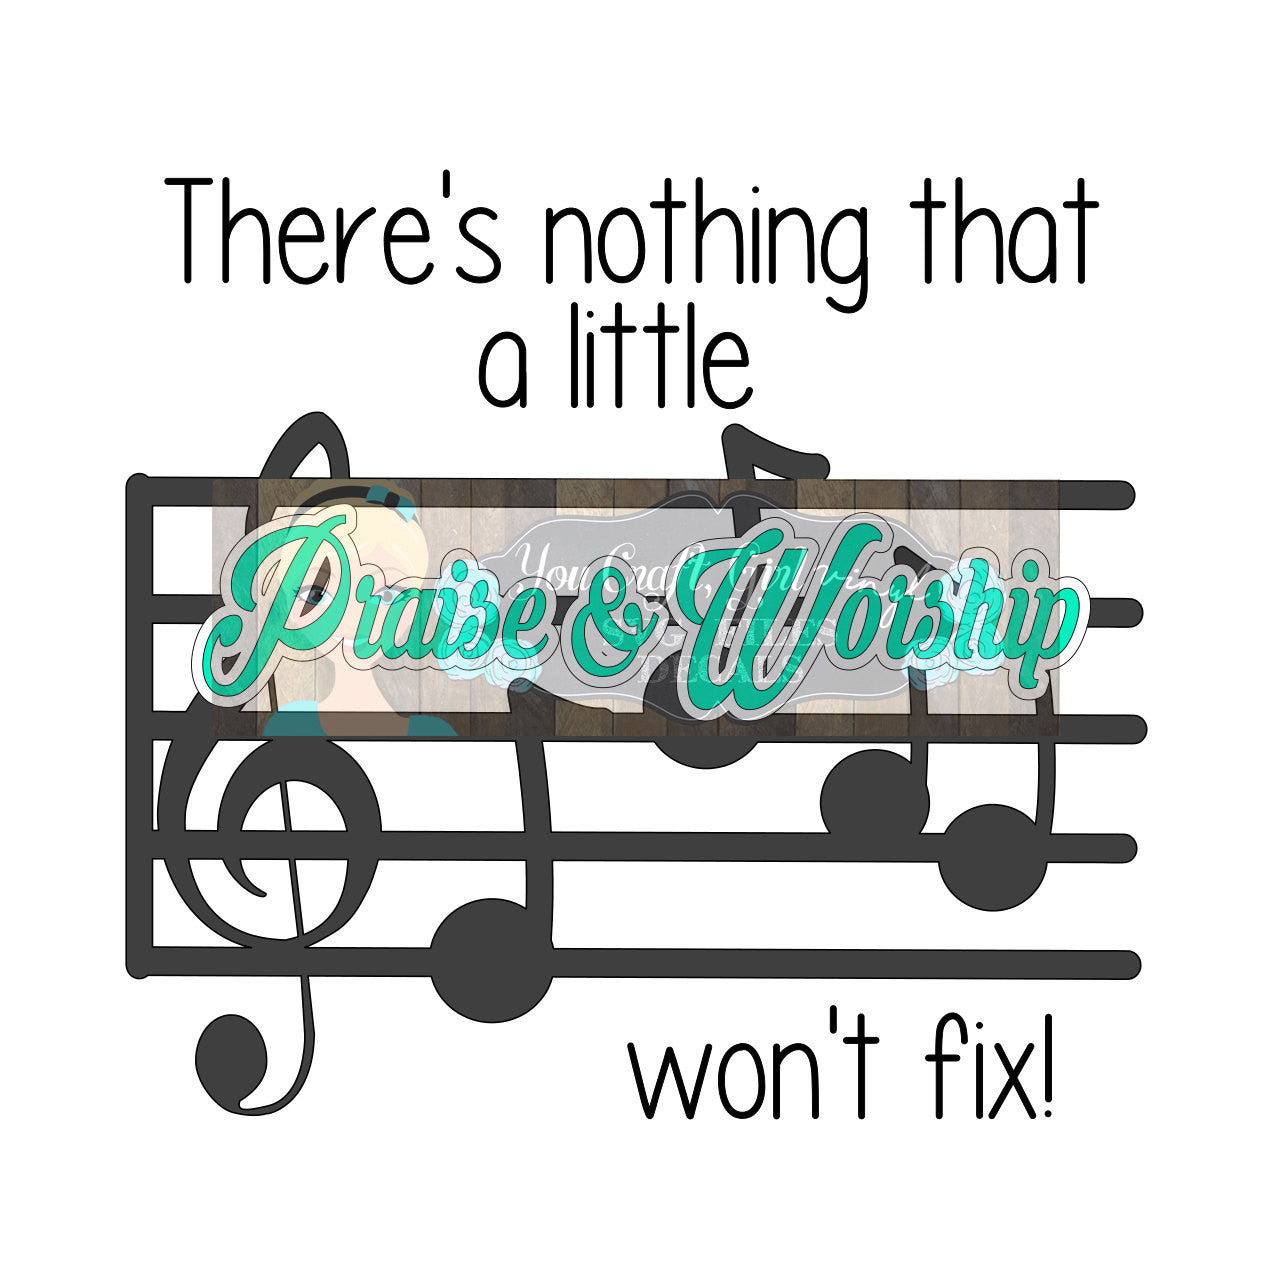 Nothing Praise and Worship Won't Fix Svg Dxf Png Pdf   Commercial Use SVG   Car or Tshirt decal   home decor SVG   Bible SVG   church decal